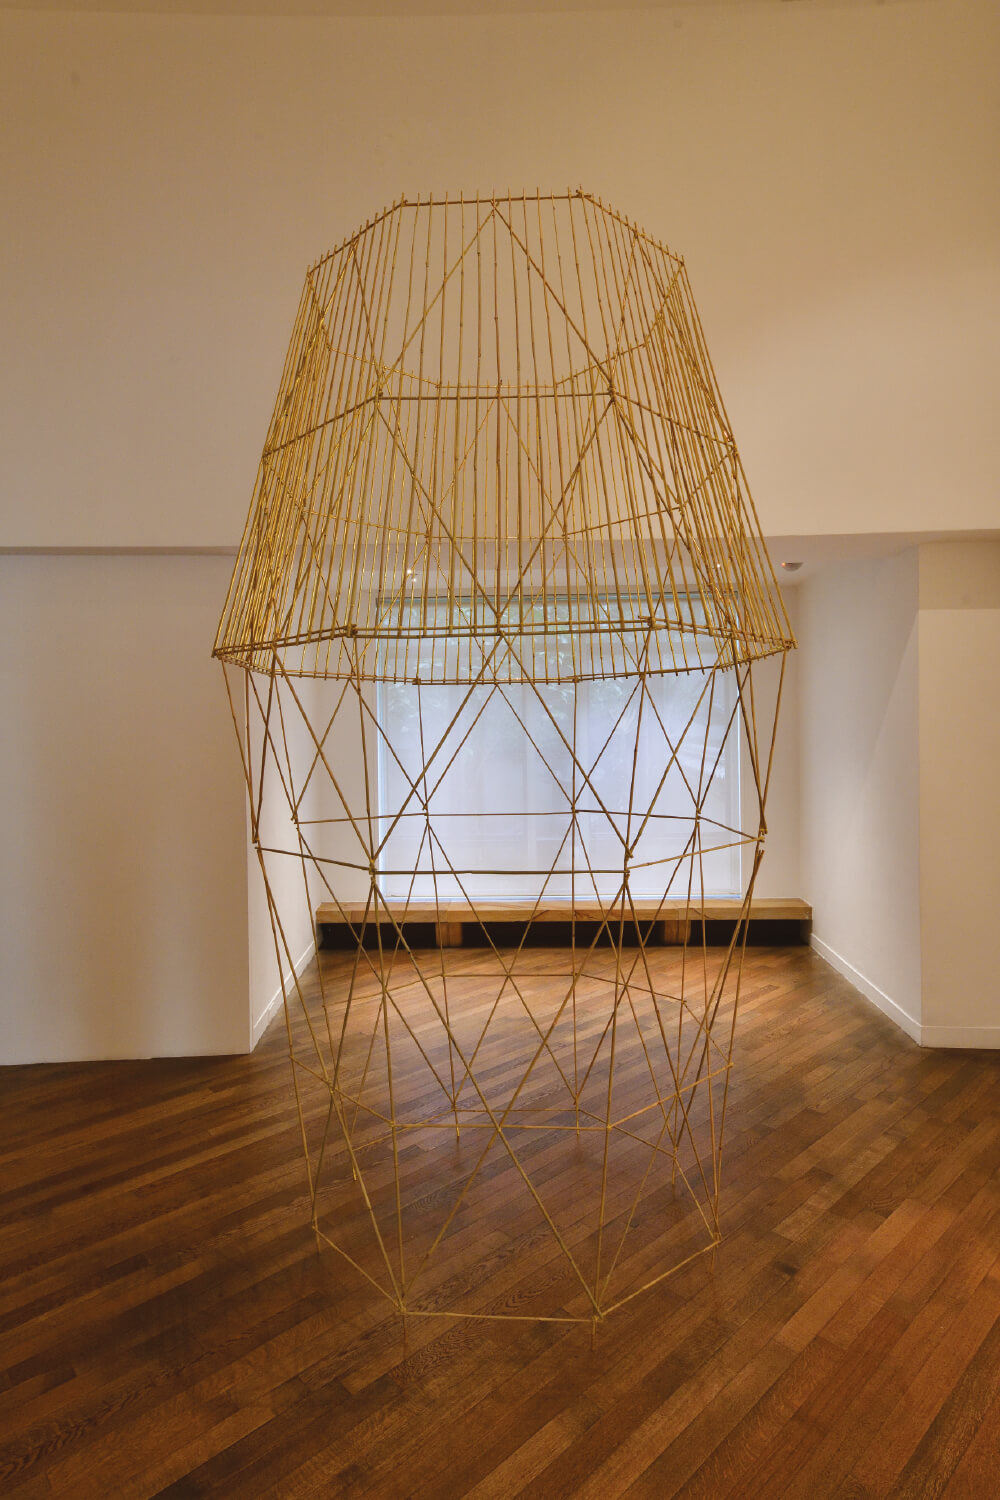 스튜디오 뭄바이, 'Tazia Bamboo', 2019, Silk thread and gold leaf, 170×170×300cm.